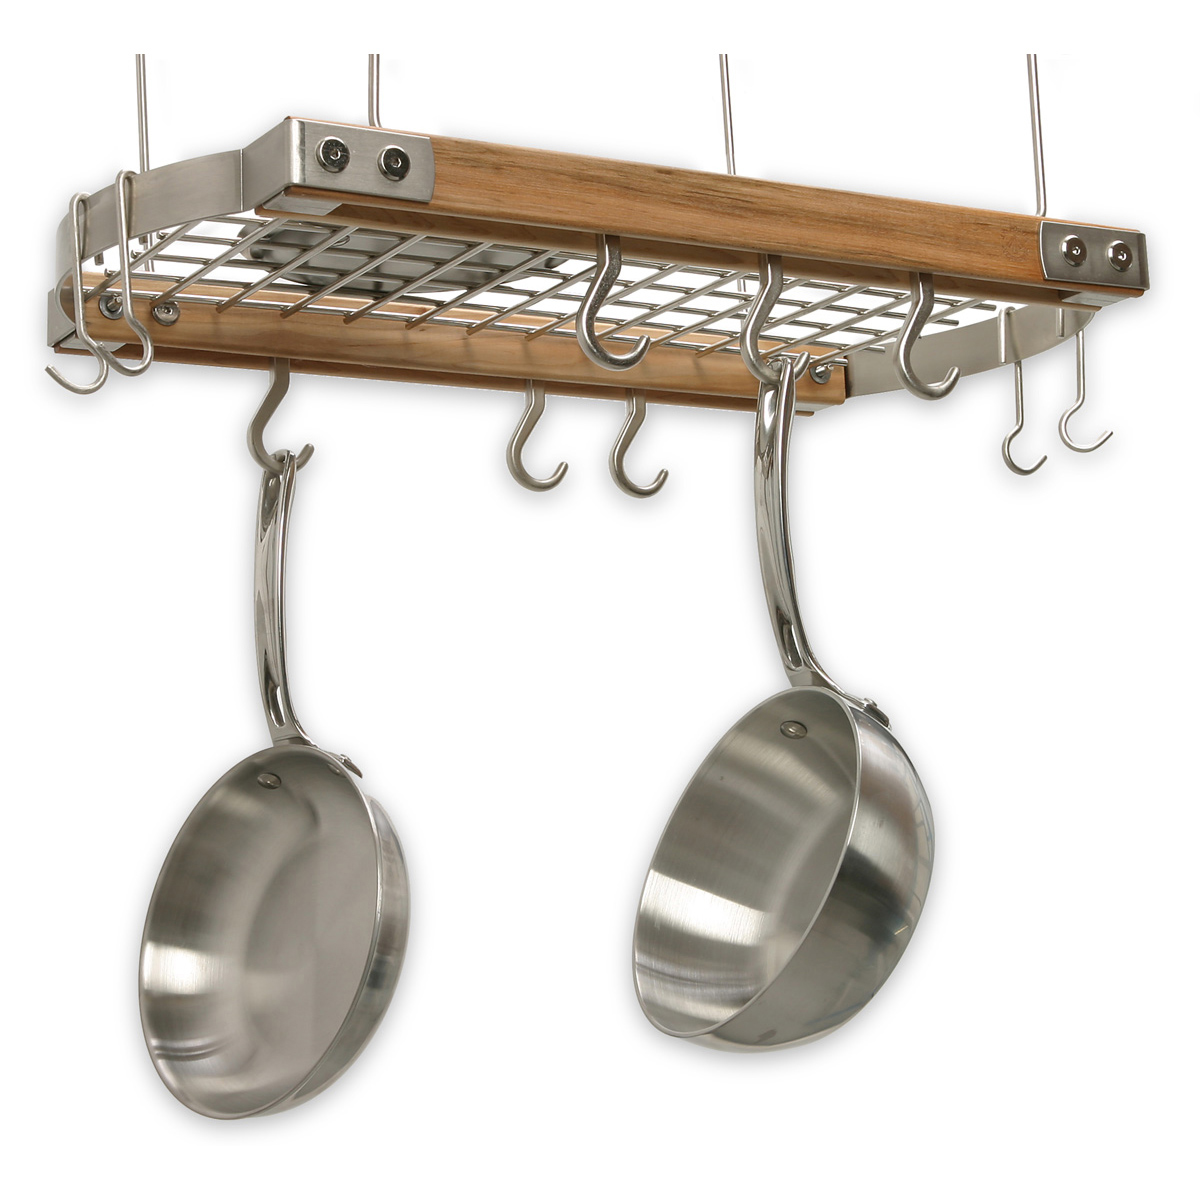 kitchen pot kzhl com racks amazon standard cooks hanging wall by mounted wooden bowls dp inch rack